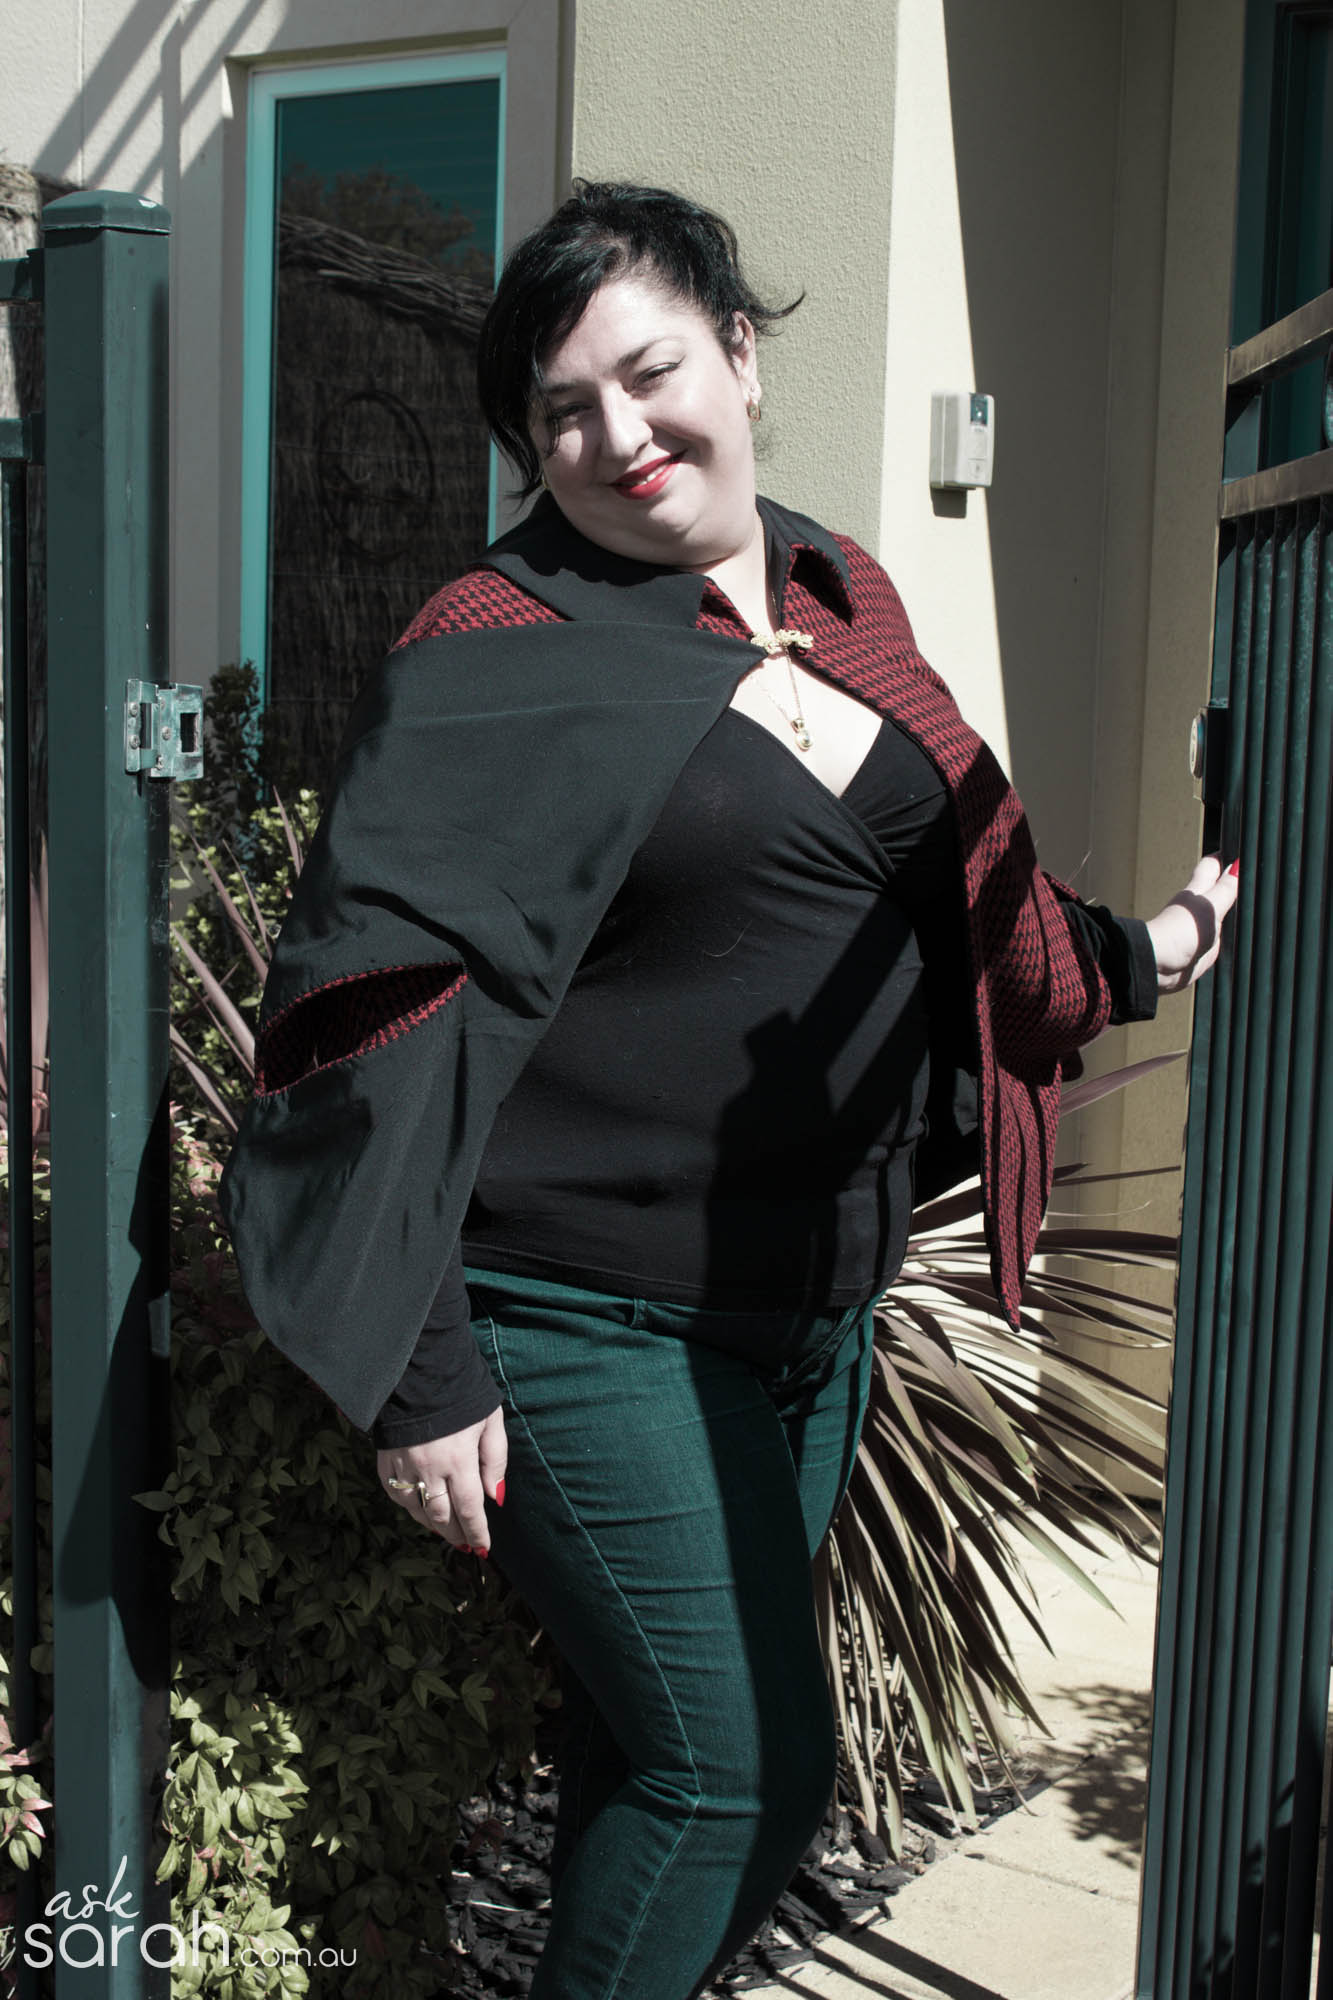 Sew: Not A Superhero But Definitely  Cape! {Sew A Collared Winter Cape}